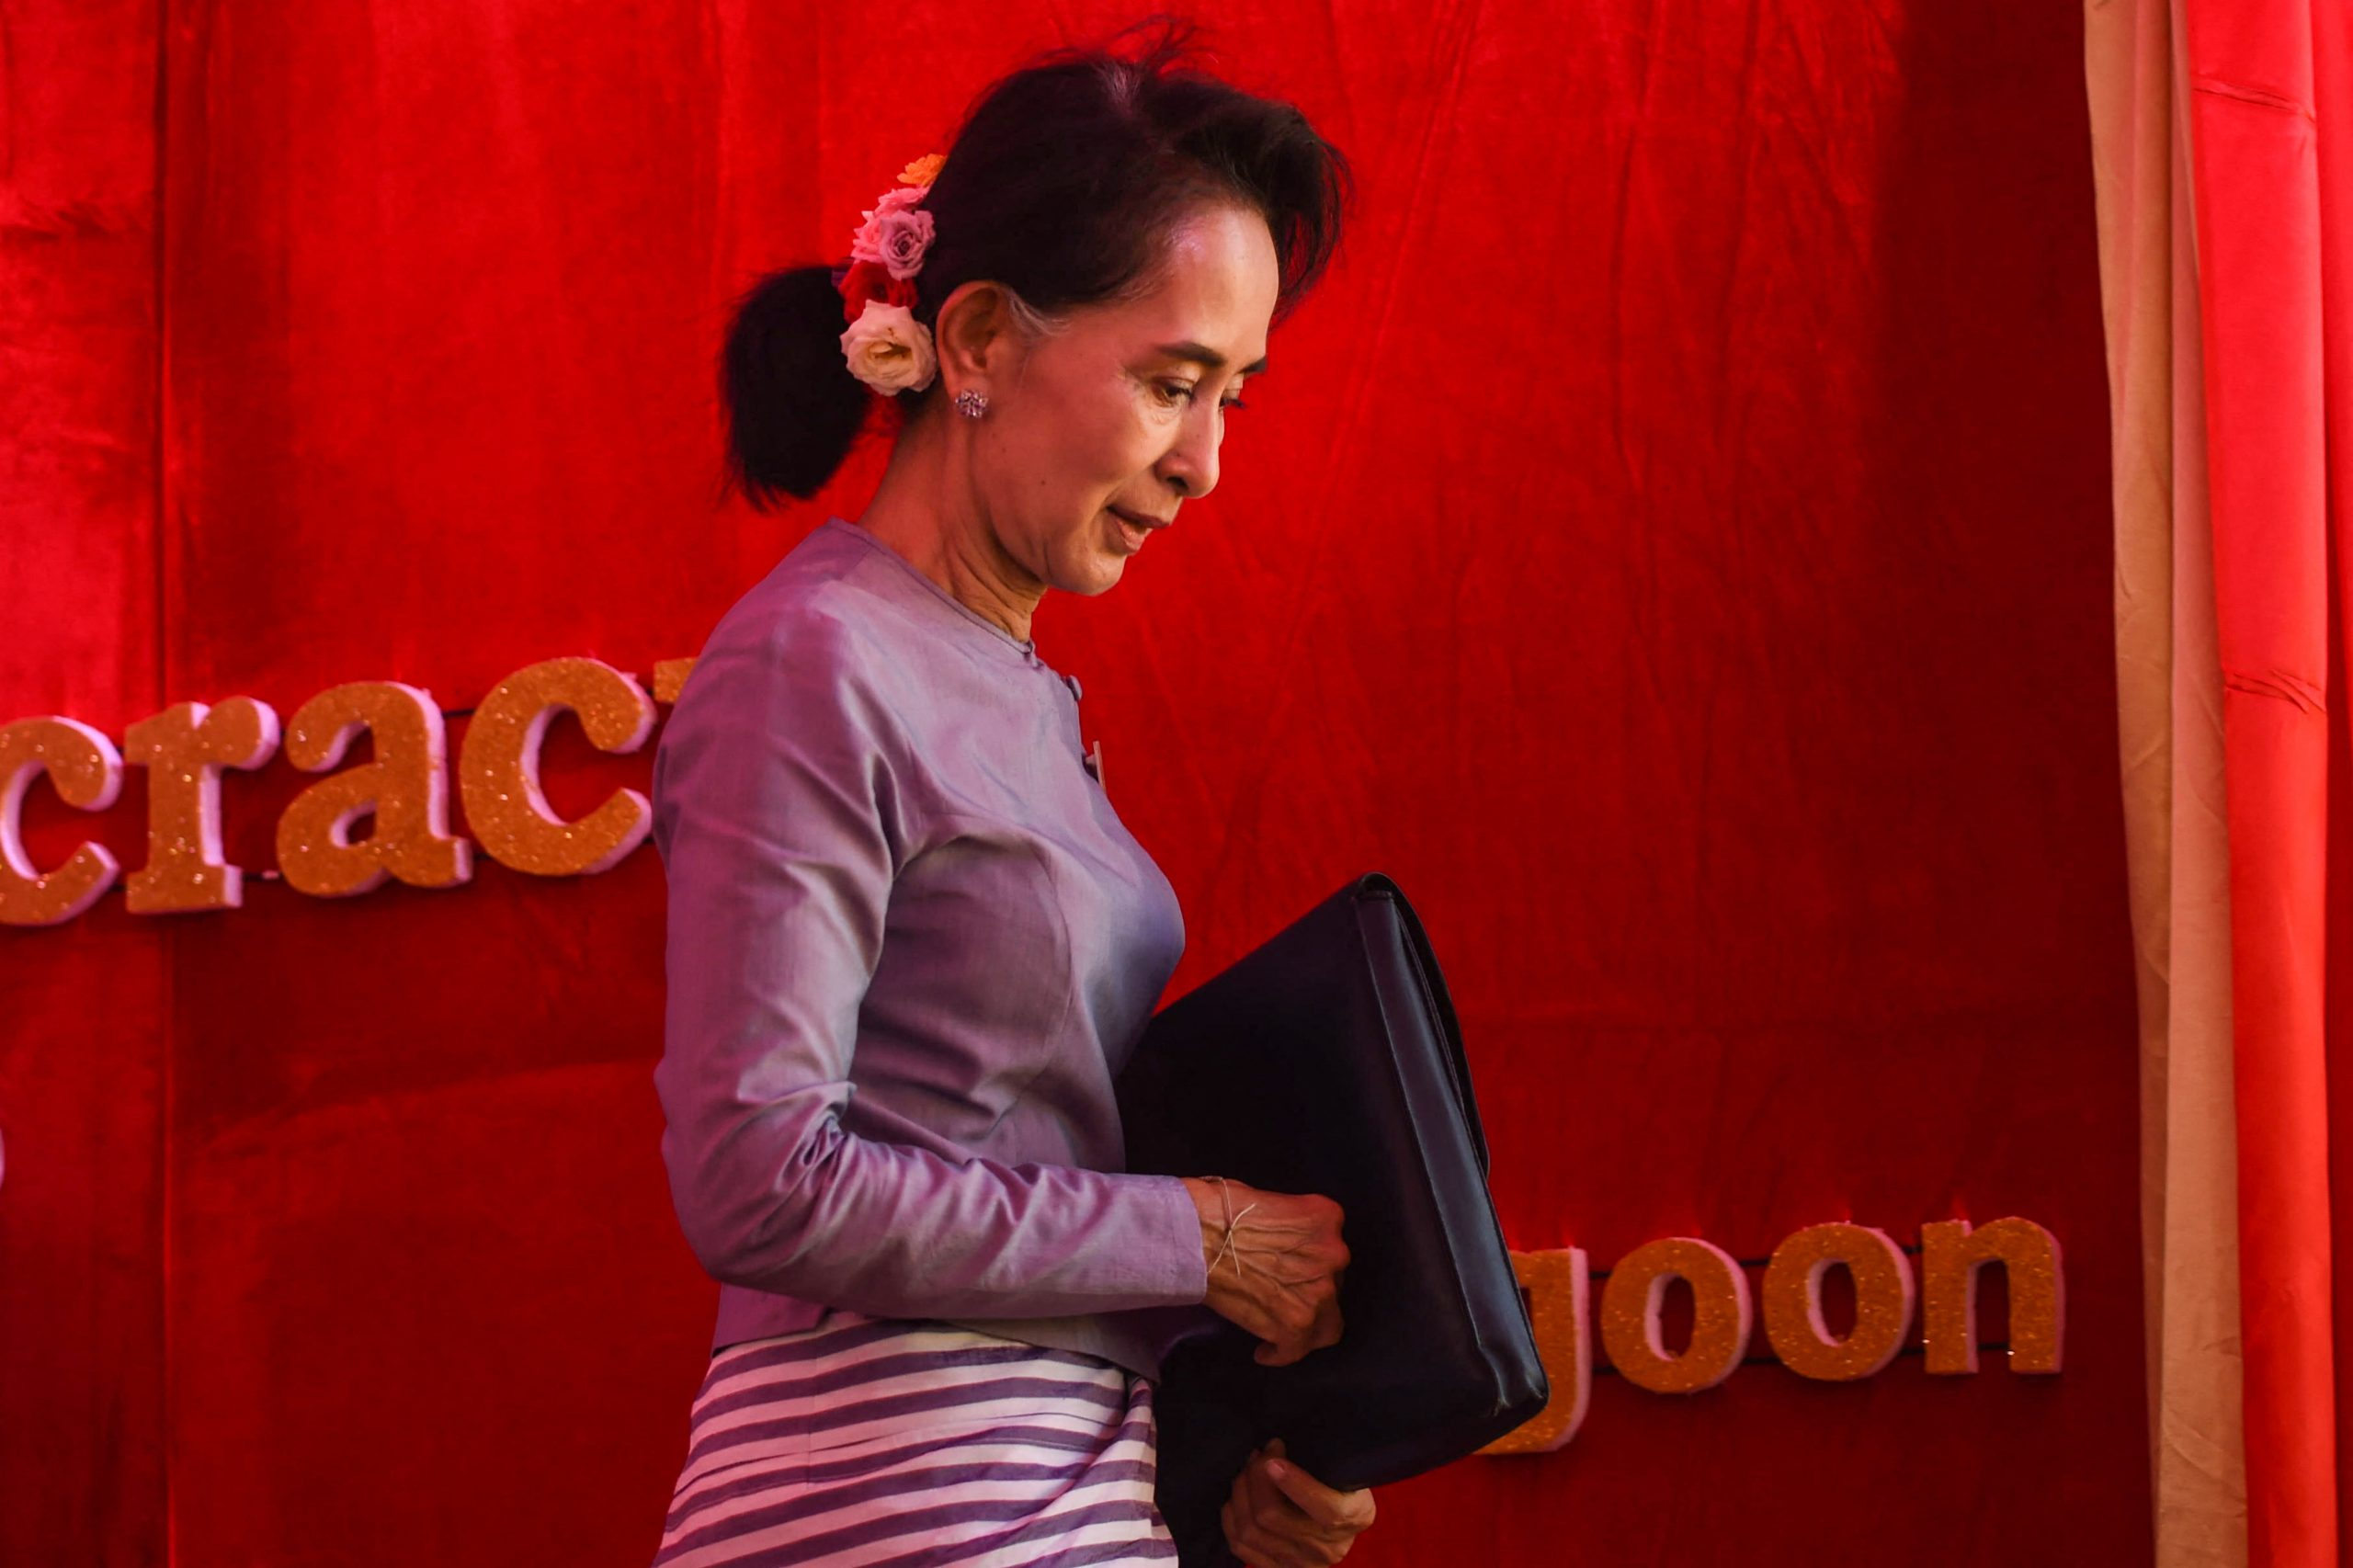 Daw Aung San Suu Kyi leaves the stage after addressing a press conference from her residential compund in Yangon on November 5, 2015. (AFP)